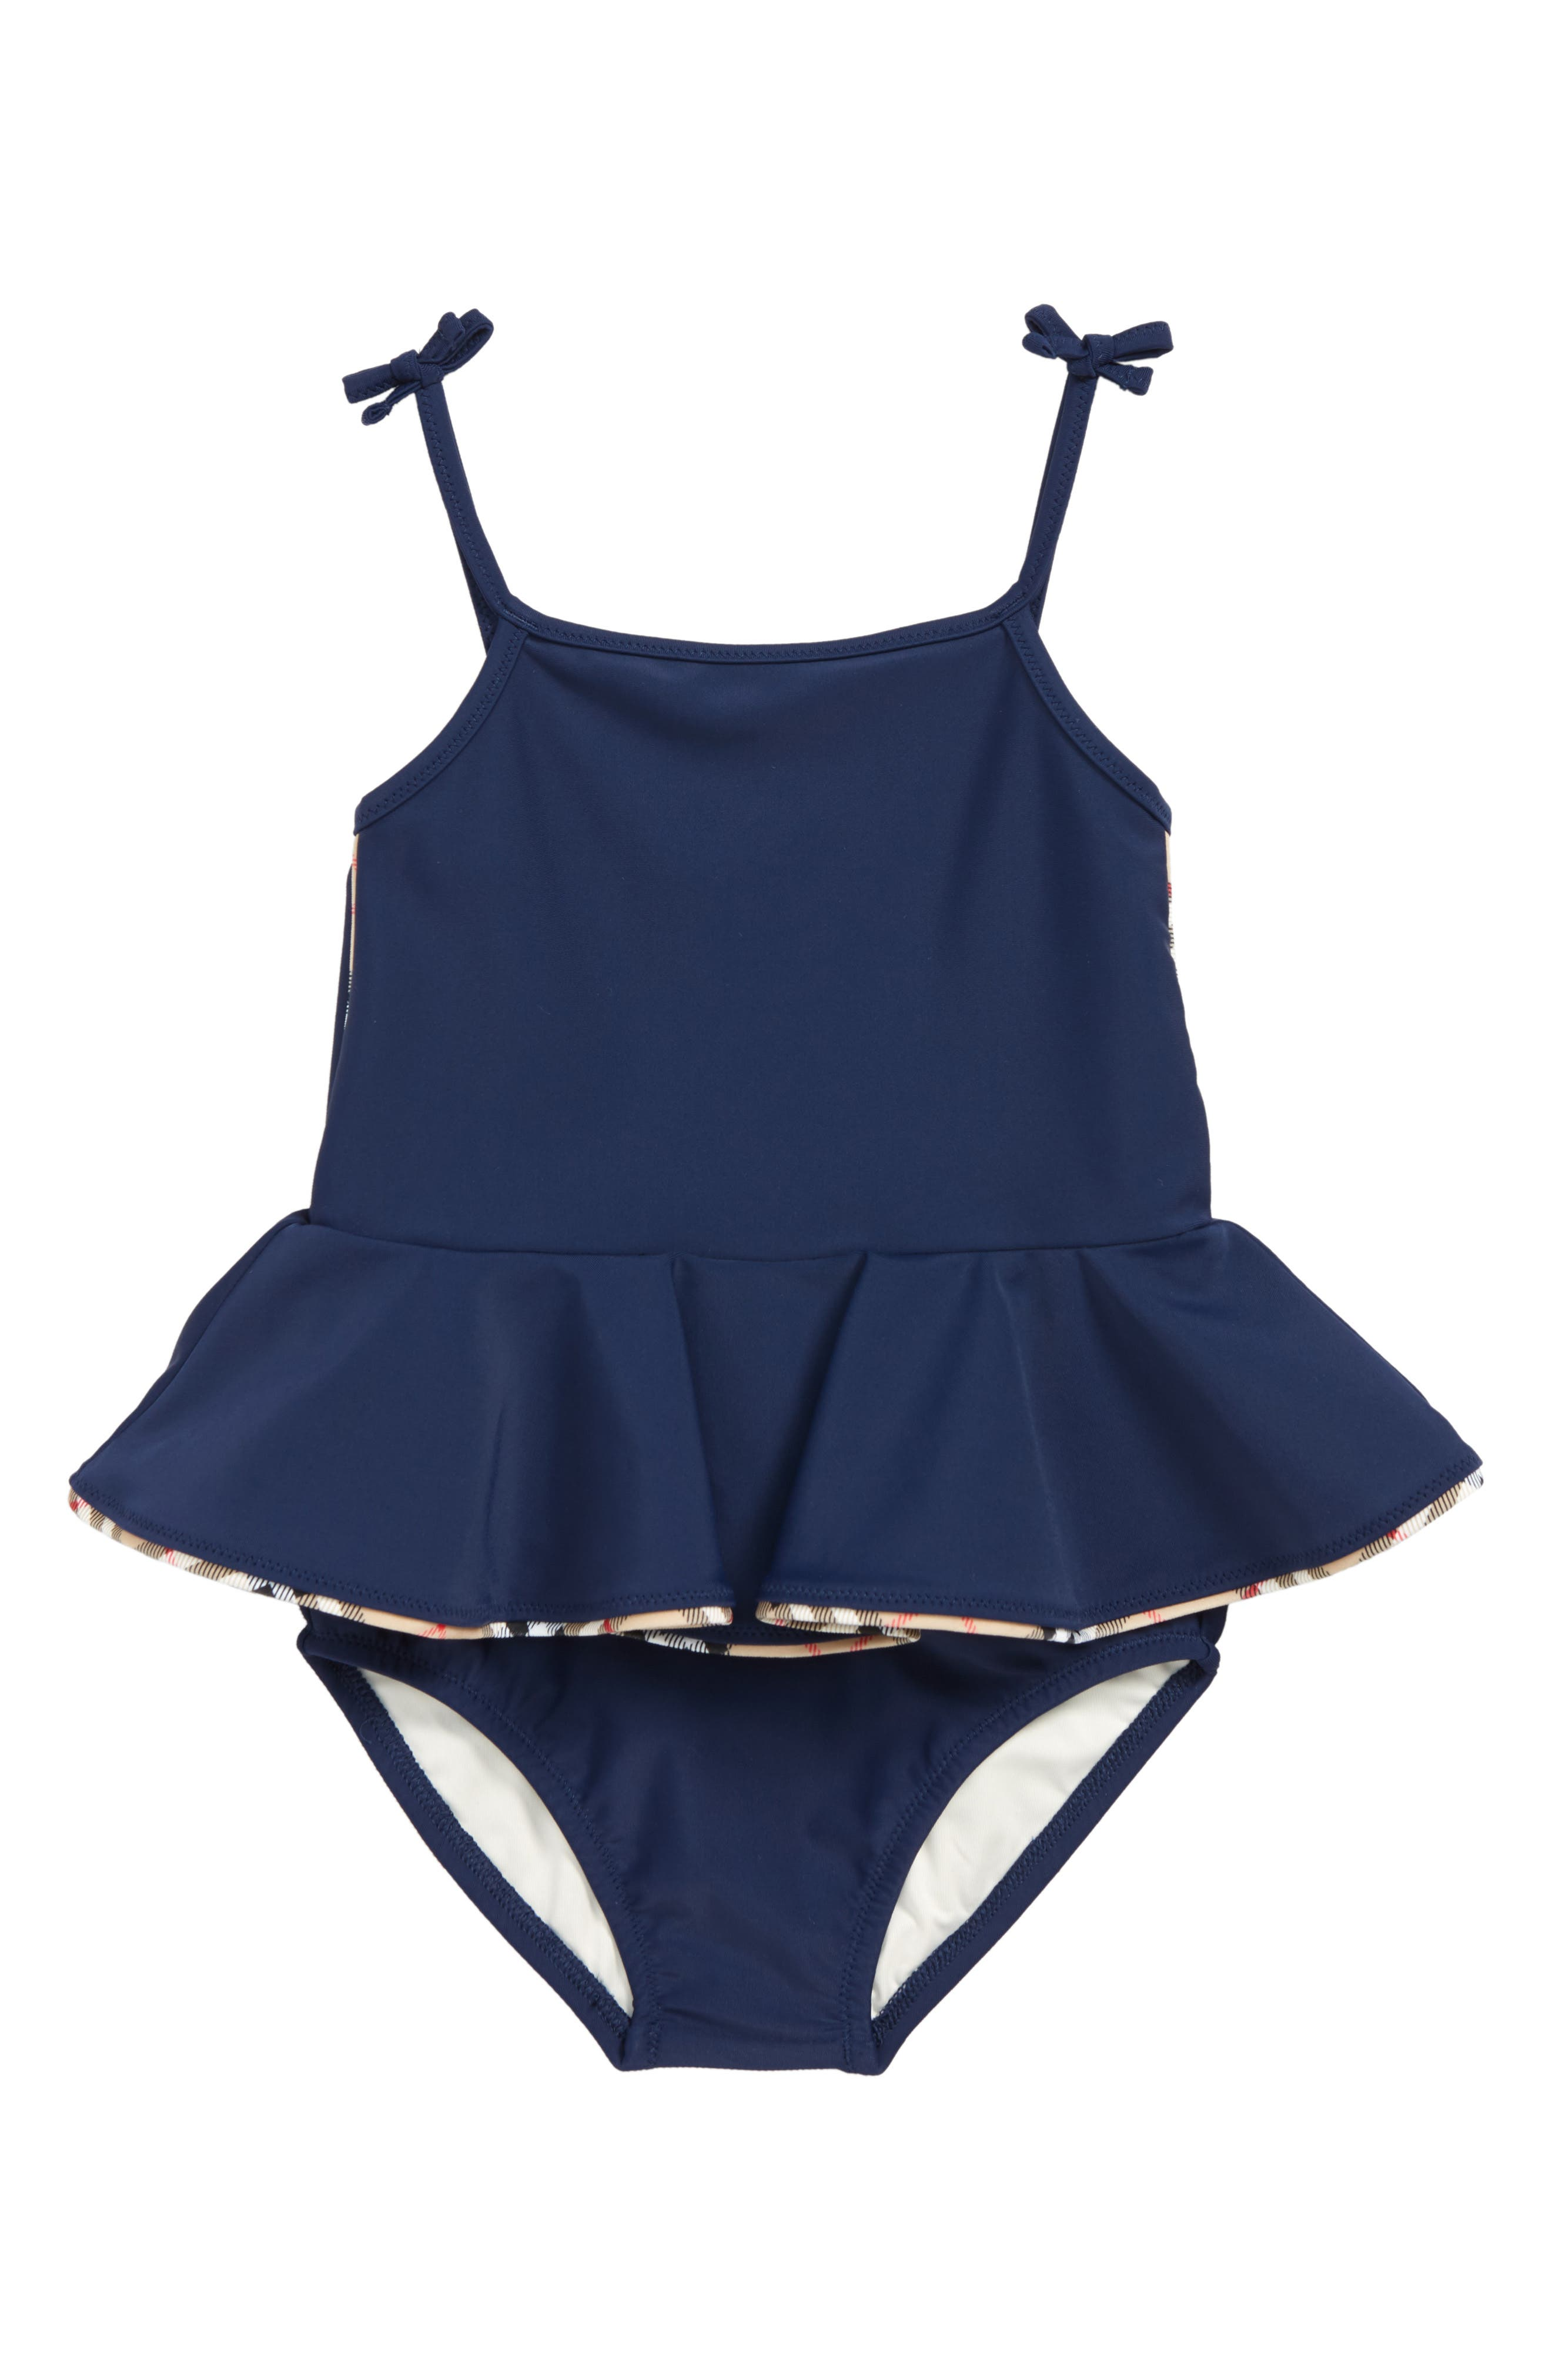 Ludine Skirted One-Piece Swimsuit,                         Main,                         color, NAVY